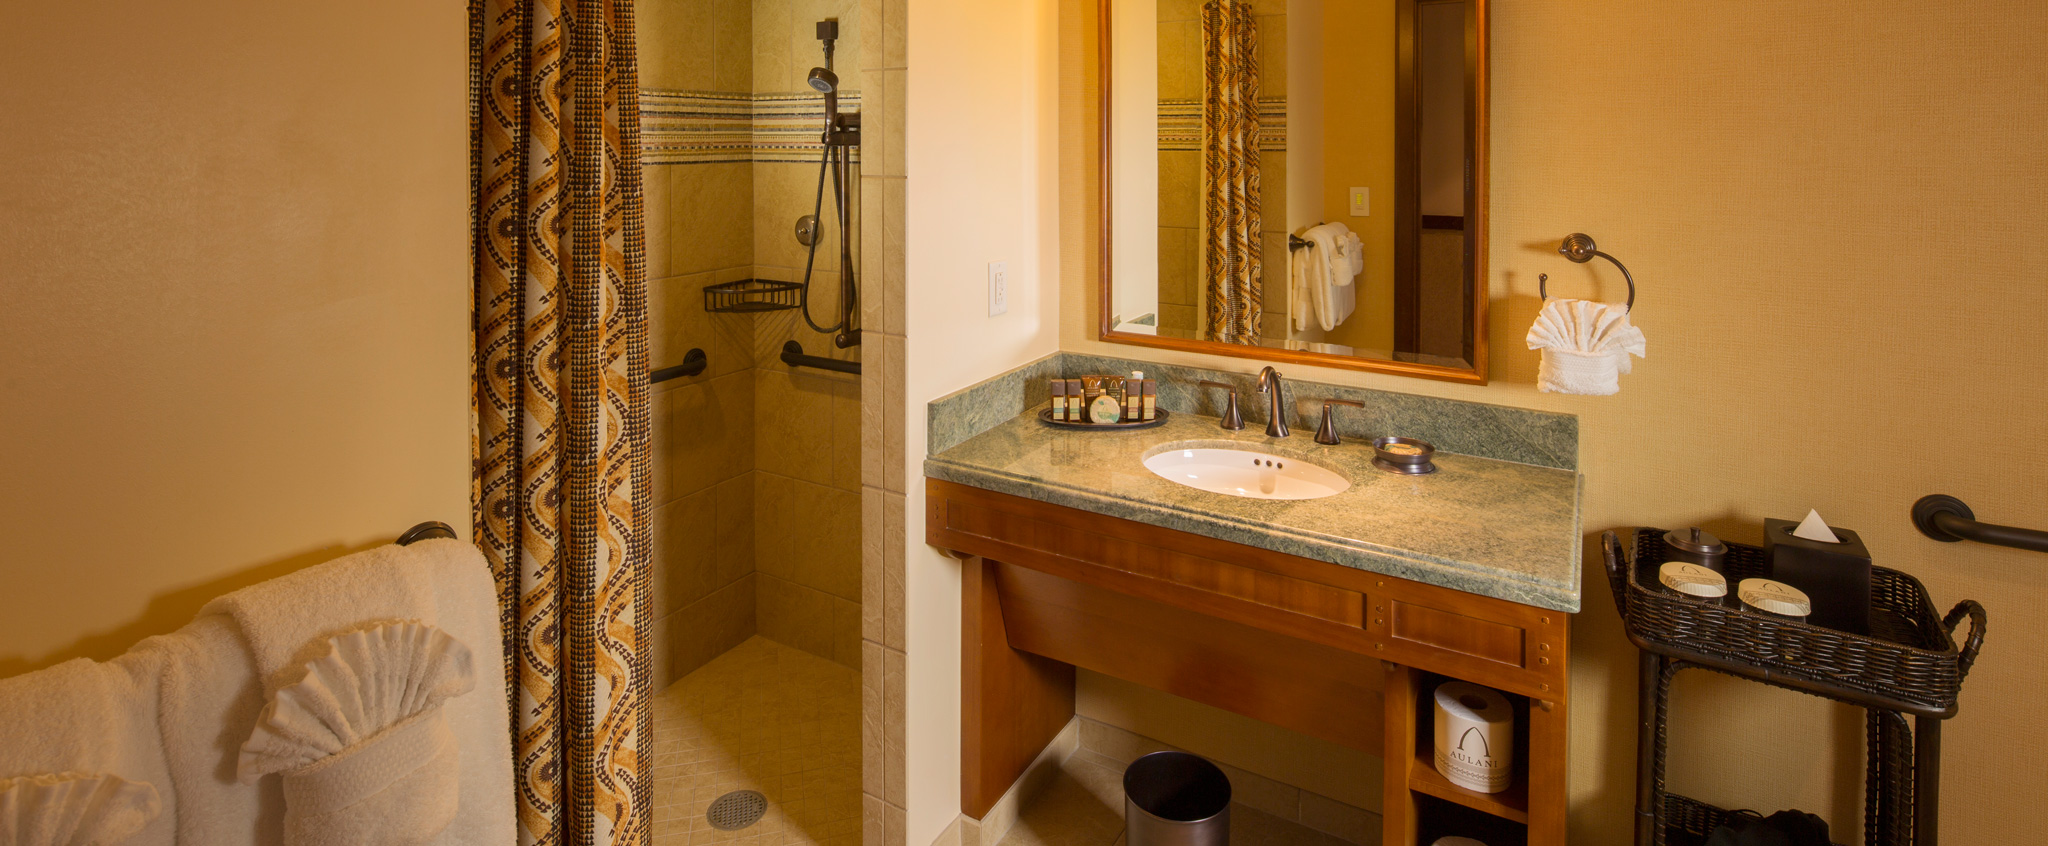 A bathroom in a 2-Bedroom Suite has a sink, tiled shower with curtain and washcloths folded in fan shapes